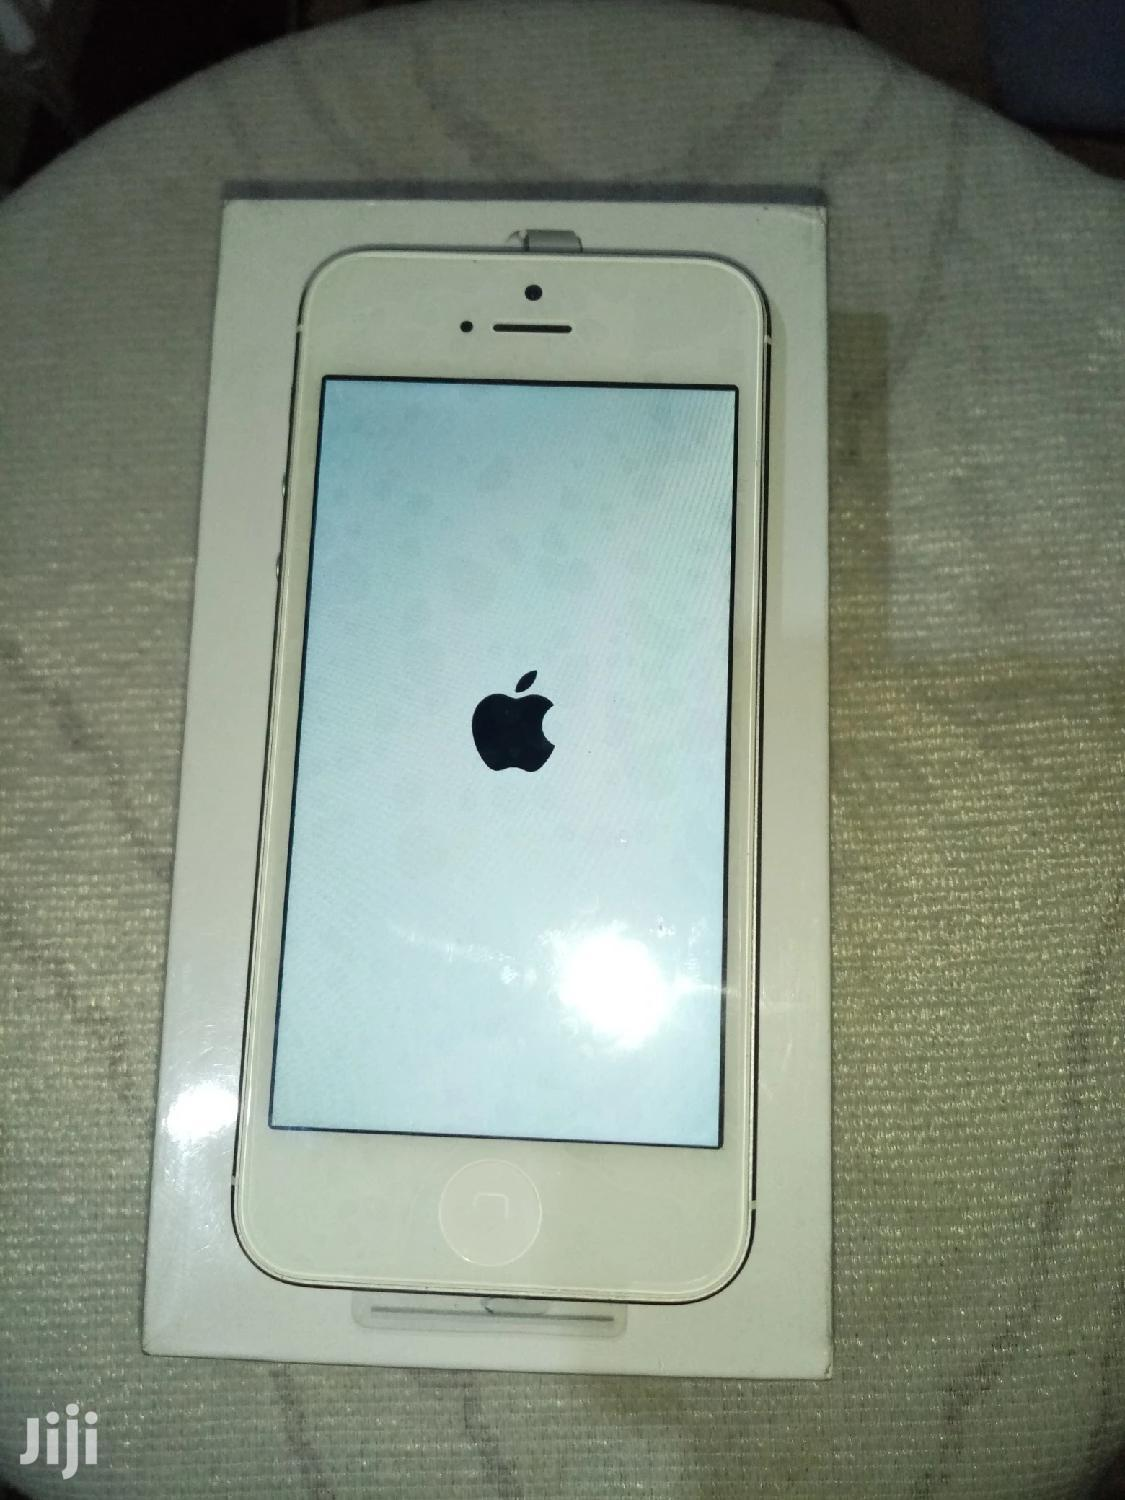 New Apple iPhone 5 16 GB White | Mobile Phones for sale in Accra Metropolitan, Greater Accra, Ghana